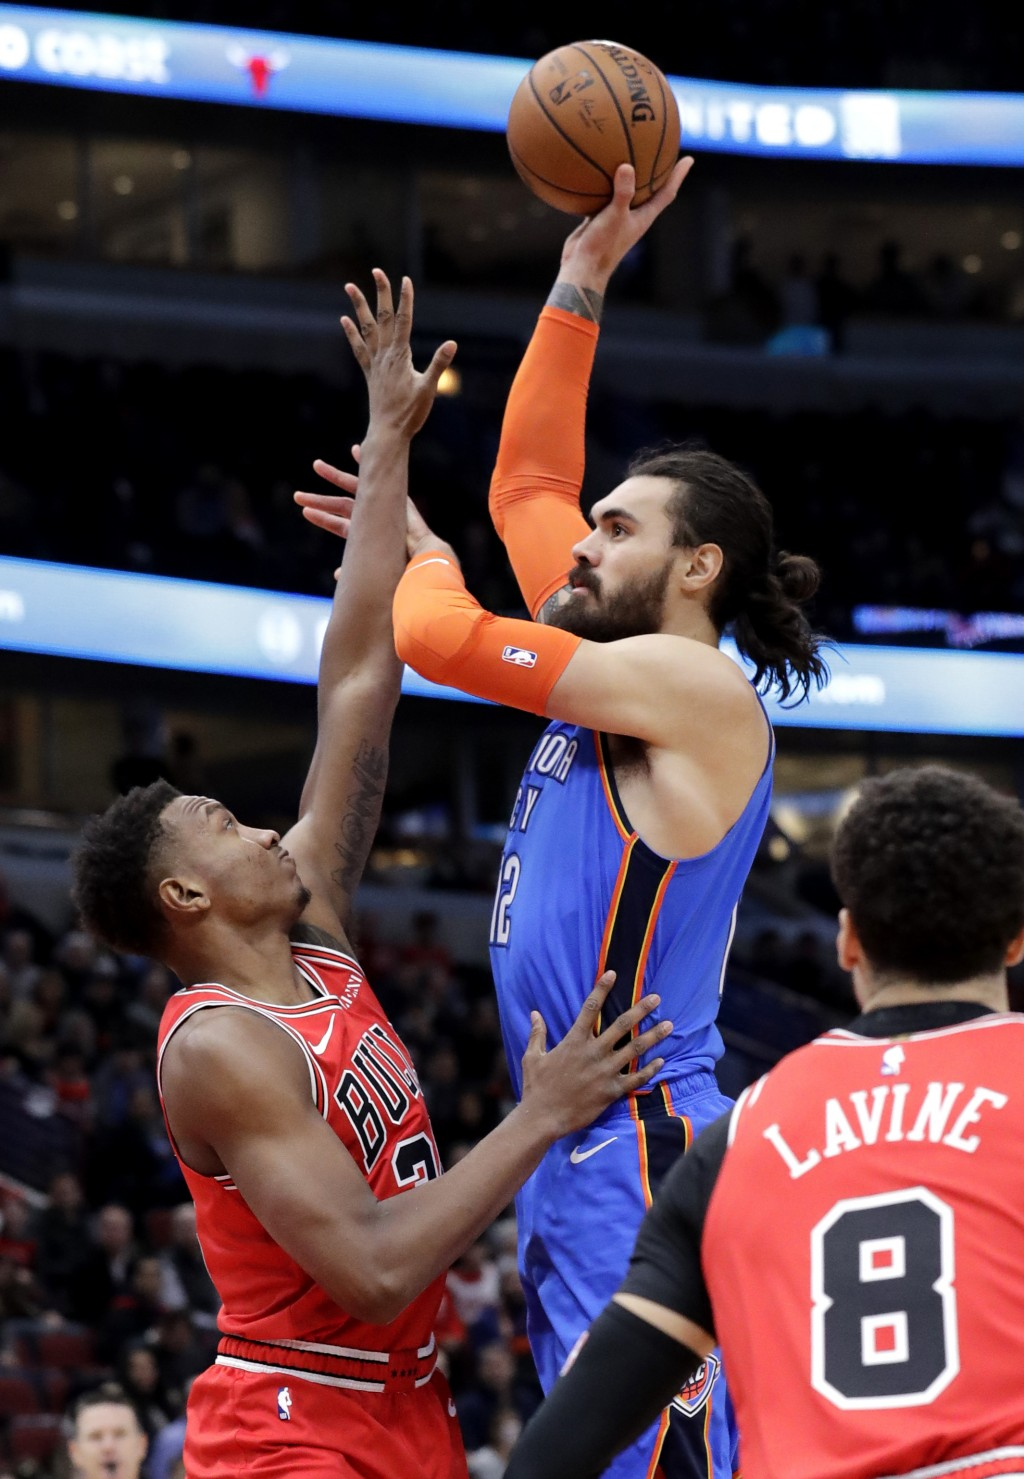 Oklahoma City Thunder center Steven Adams, right, shoots over Chicago Bulls center Wendell Carter Jr., during the first half of an NBA basketball game